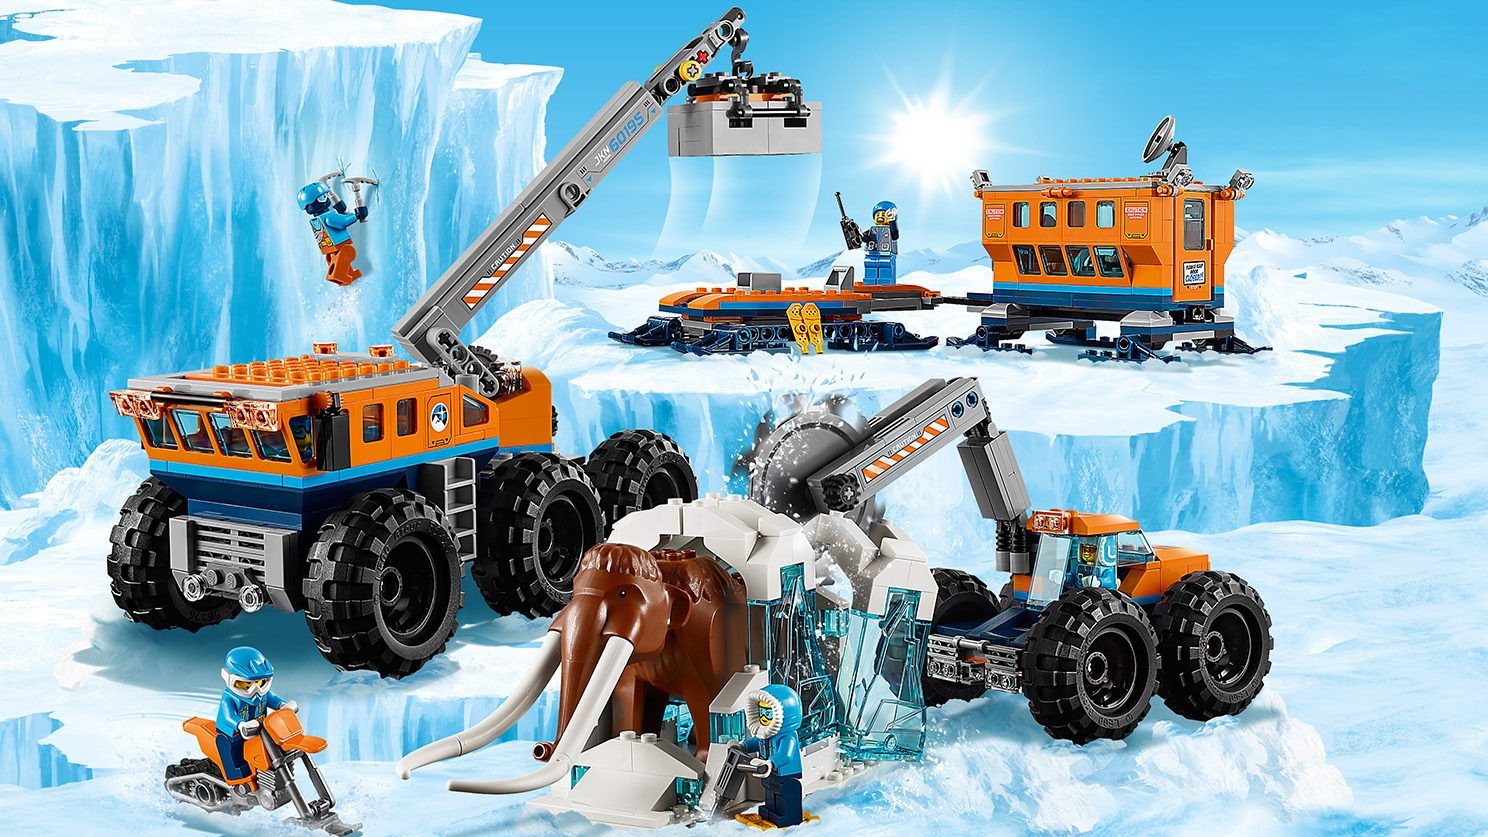 LEGO City Arctic Expedition - 60195 Arctic Mobile Exploration Base - The arctic workers have used all their machines and vehicles to get a mammoth up from deep inside the ice where it has been preserved.